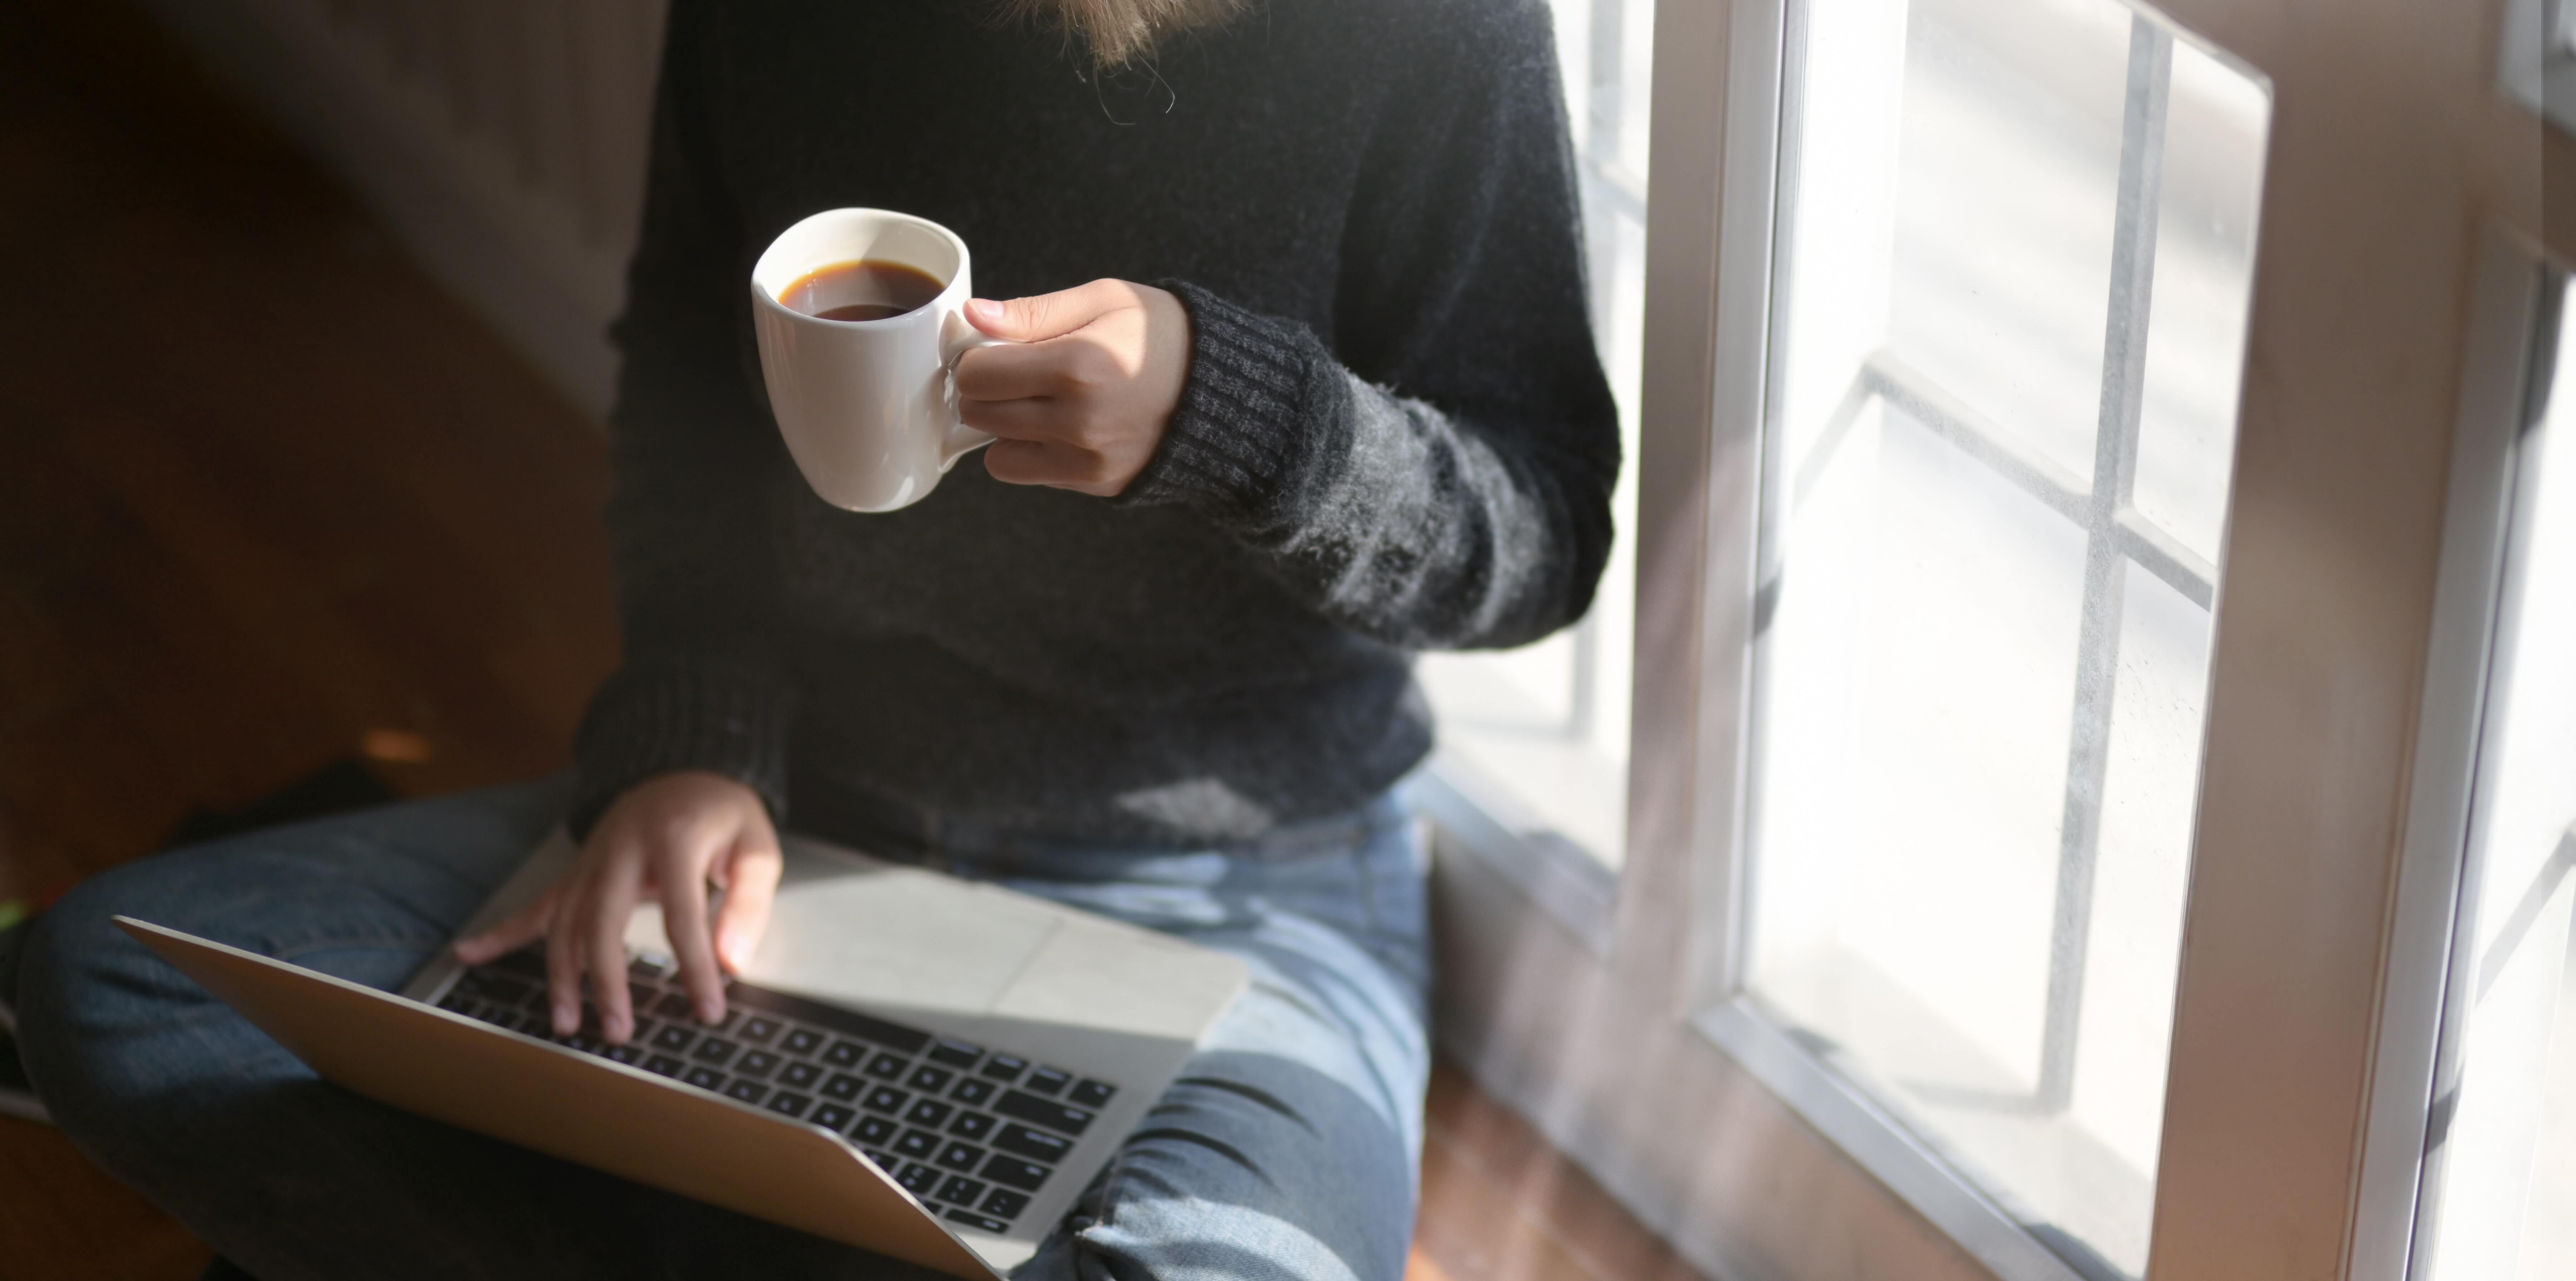 Working from home for first timers Pt.2 by Chris Revelia